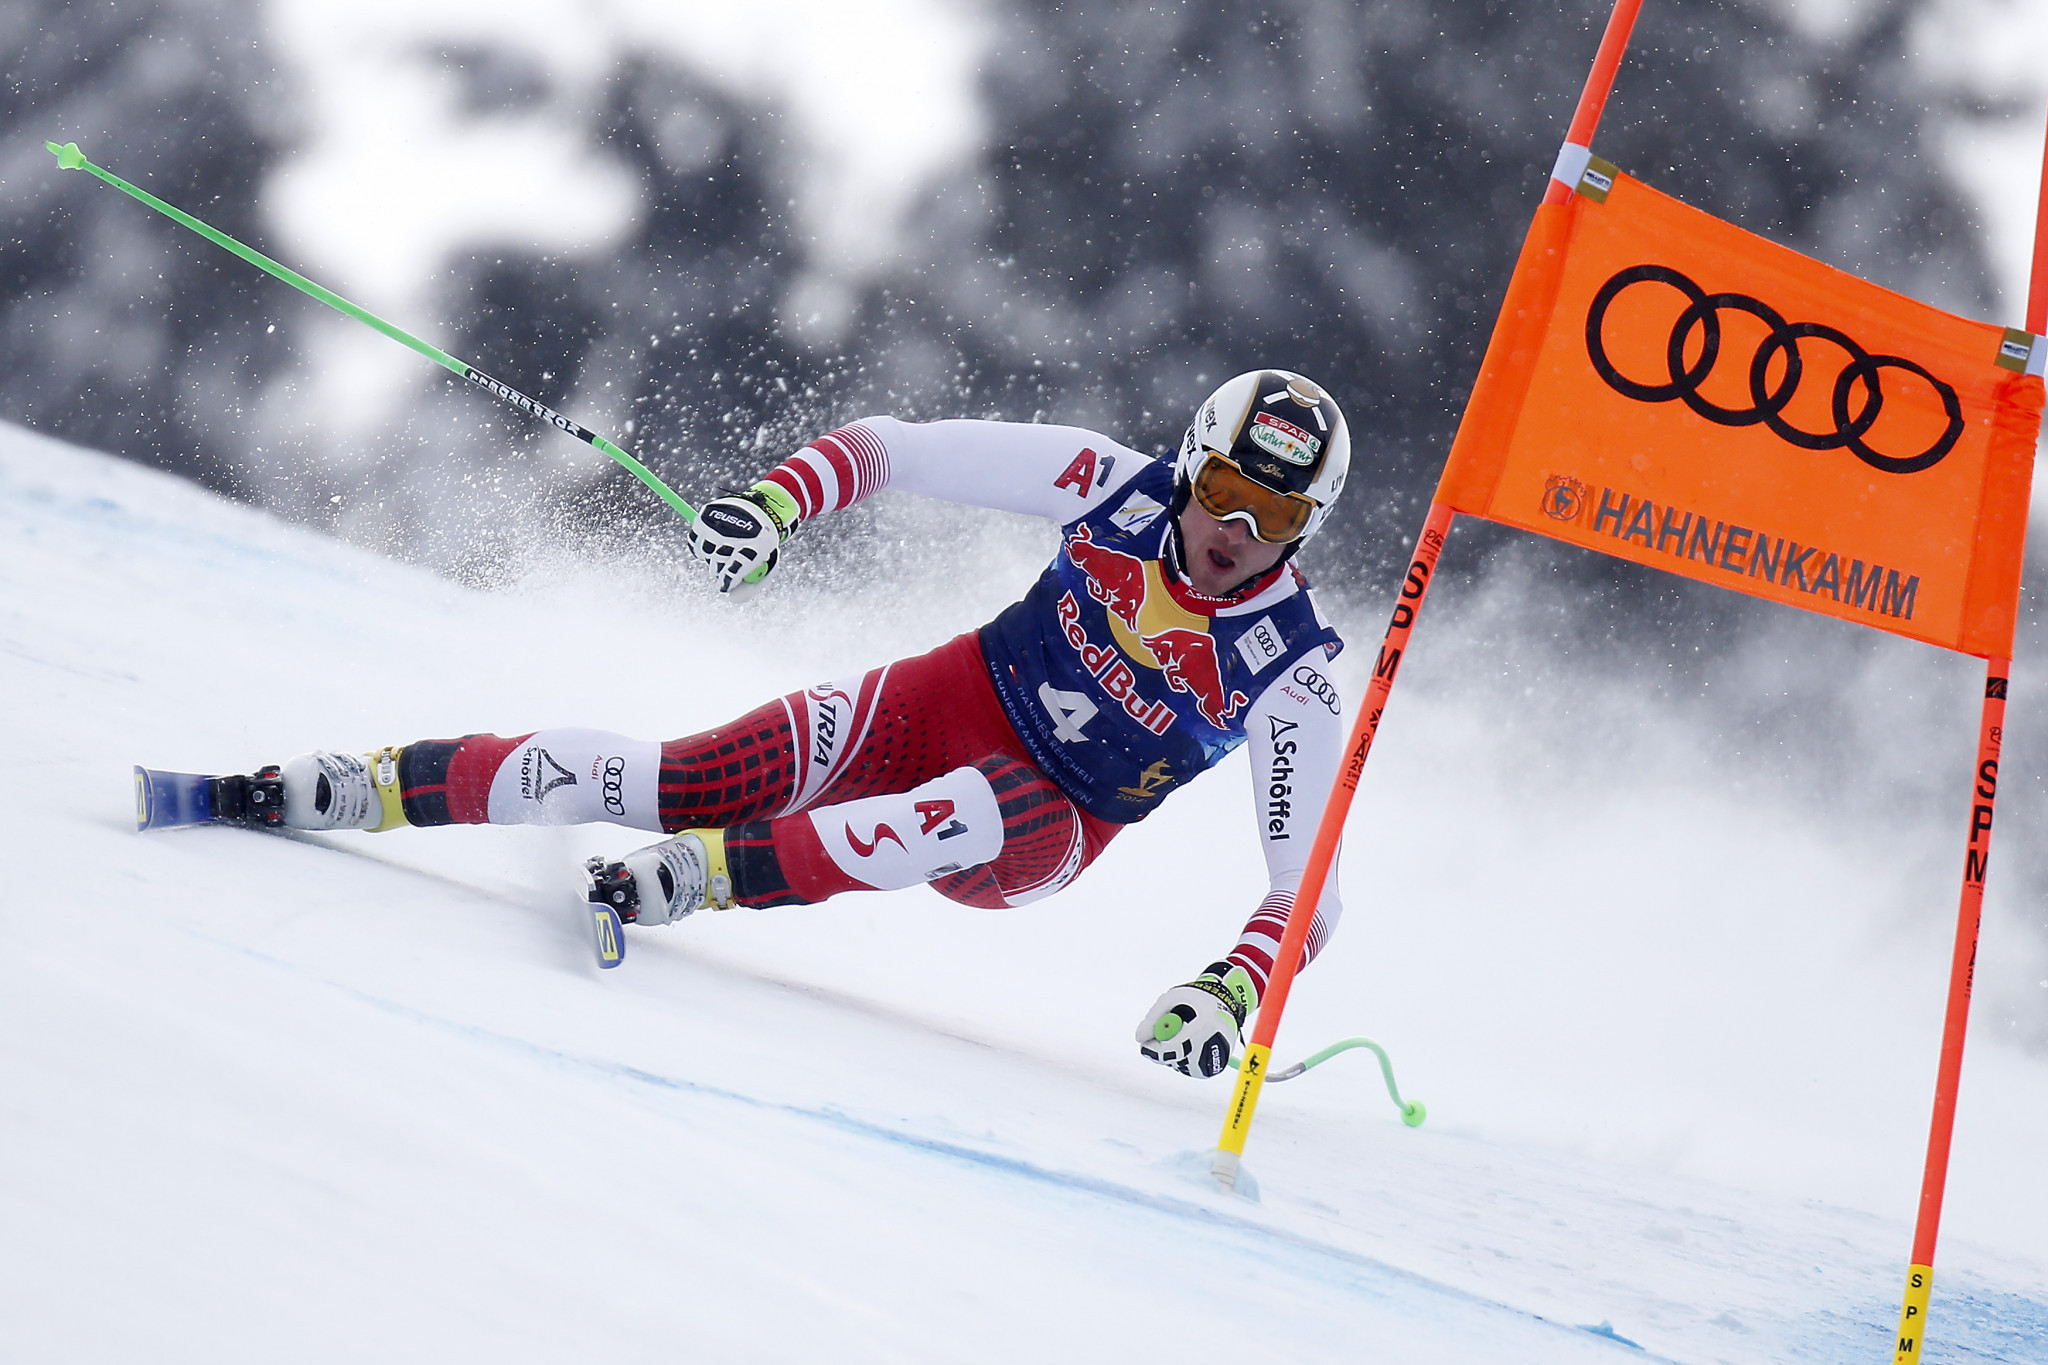 Austria's Reichelt tops final downhill training standings prior to FIS Alpine Skiing World Cup in Kitzbühel